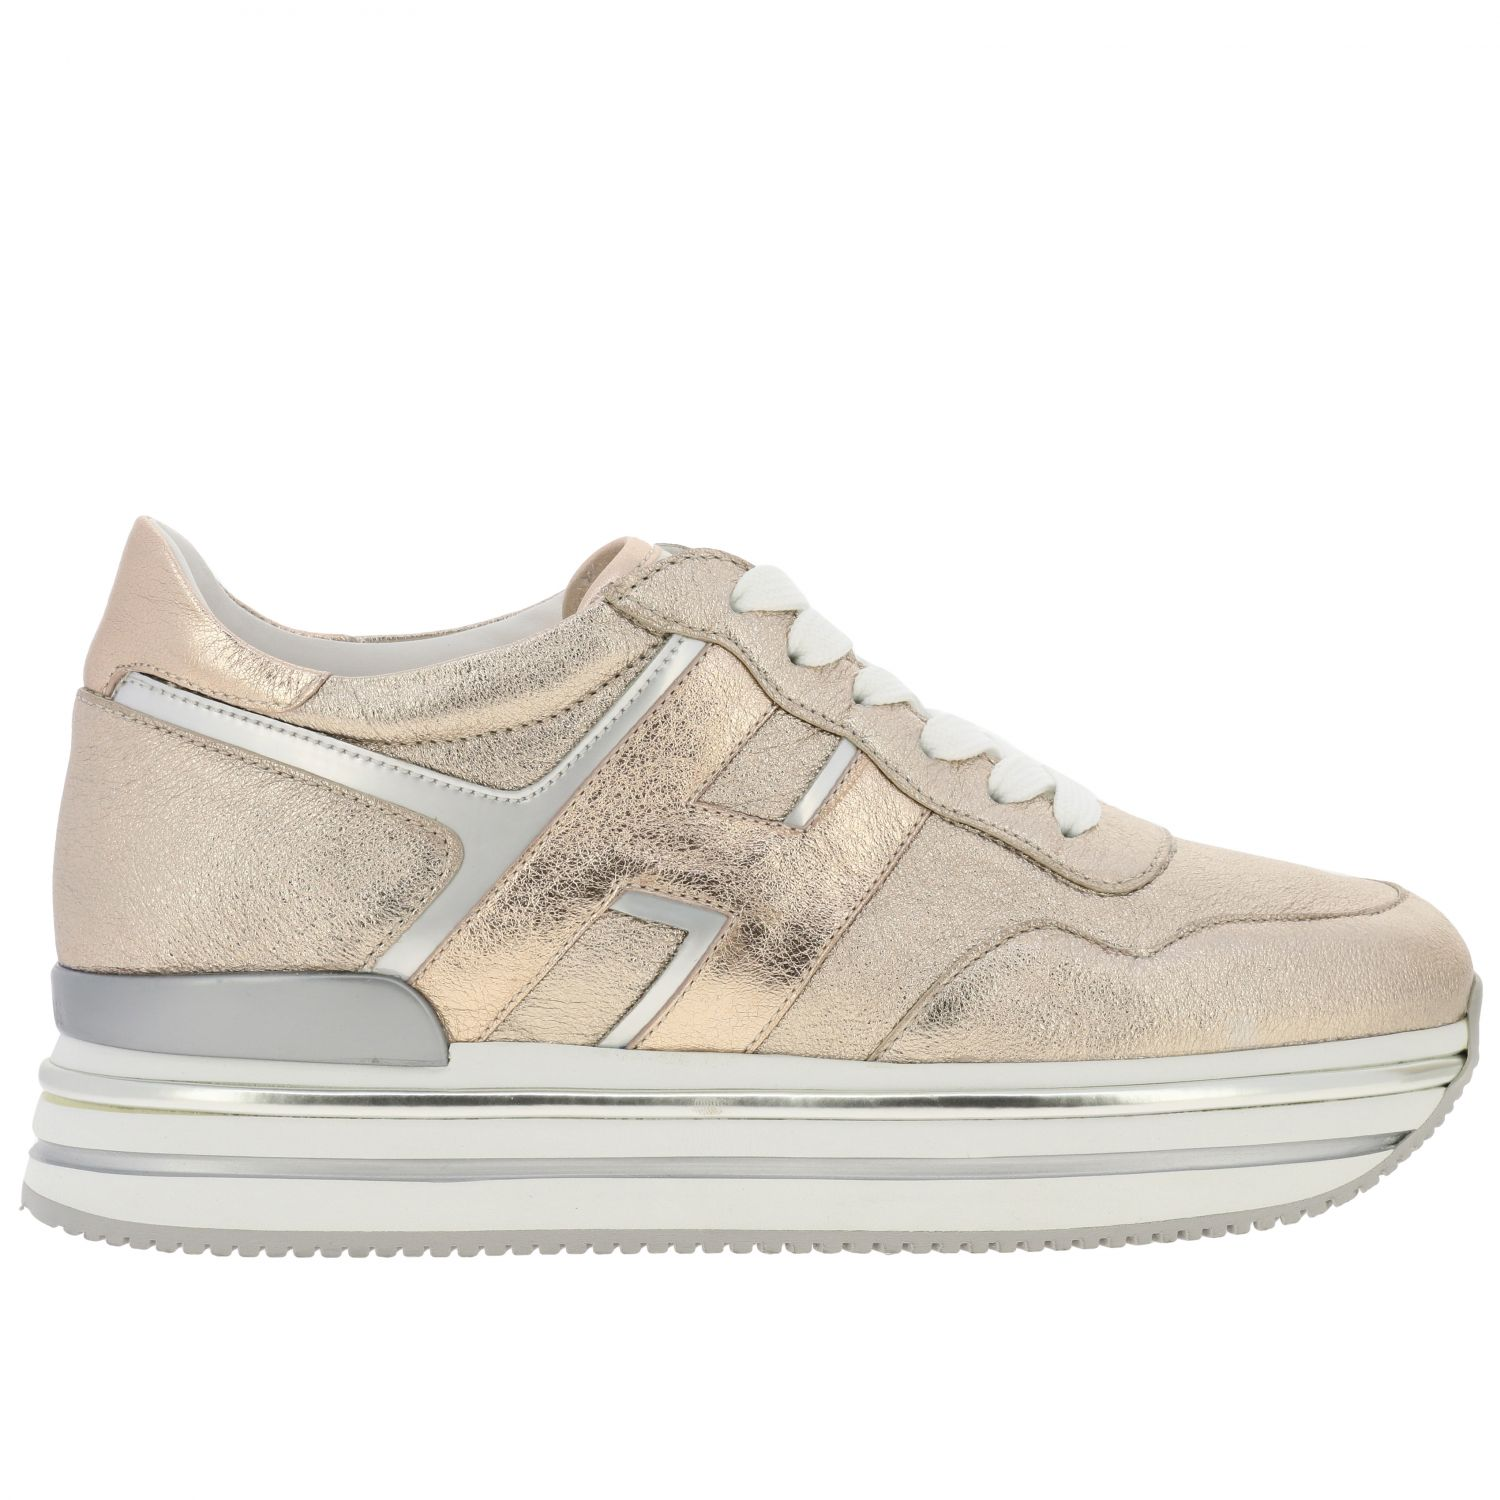 Hogan sneakers in laminated and mirrored leather with sole 222 pink 1